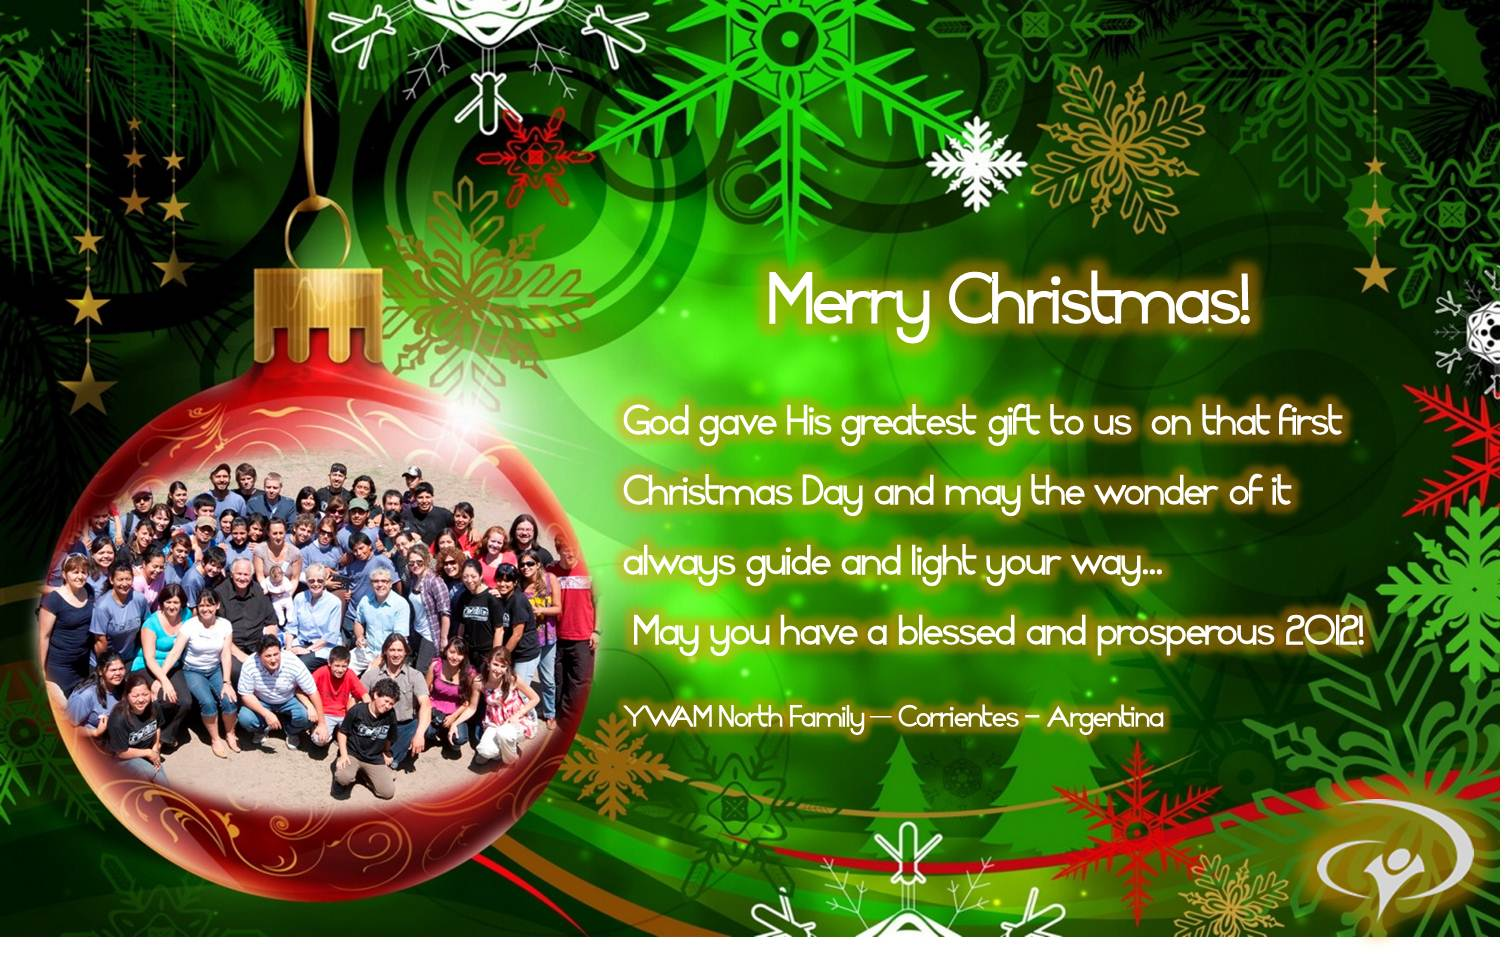 Christmas greeting messages or pictures